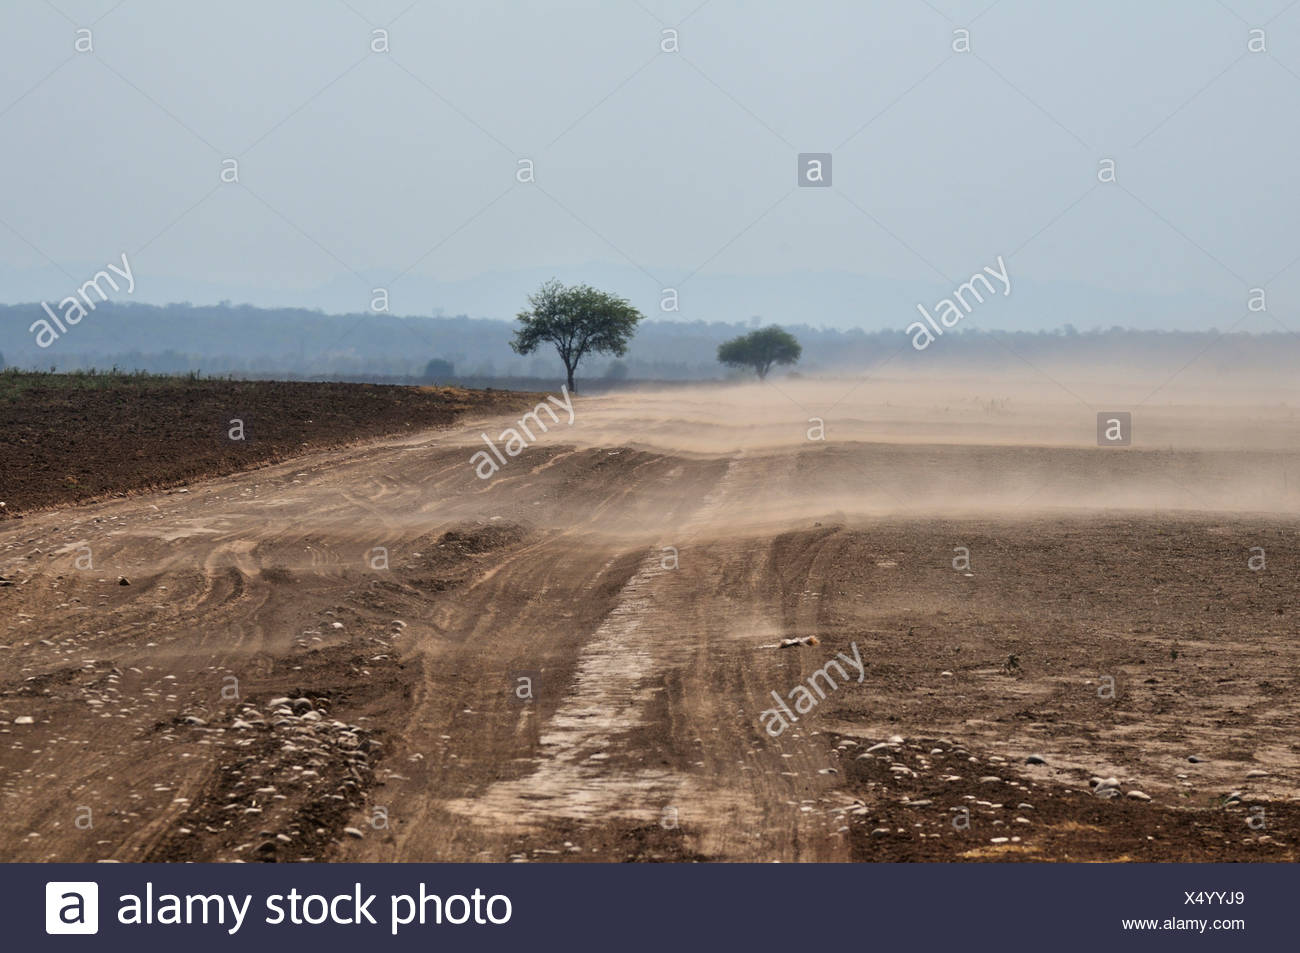 Erosion, the wind disperses the nutrient-rich soils from the cleared areas, Gran Chaco, Salta province, Argentina, South America - Stock Image